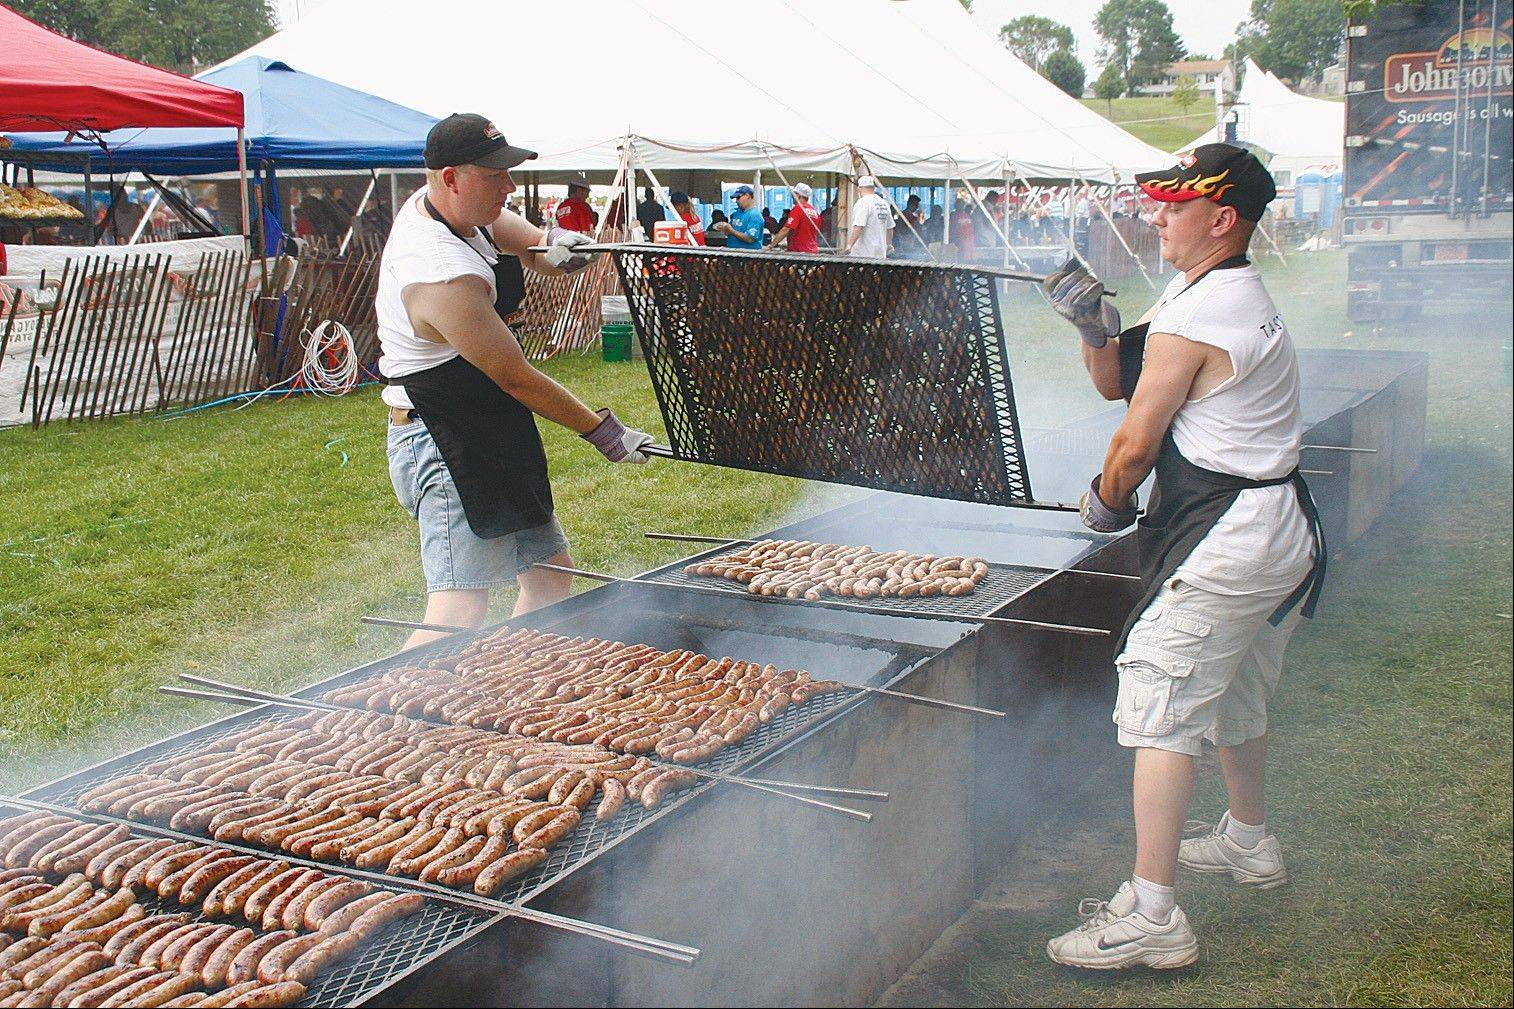 Sausage is king during Brat Days in Sheboygan, Wis., Aug. 2-4.